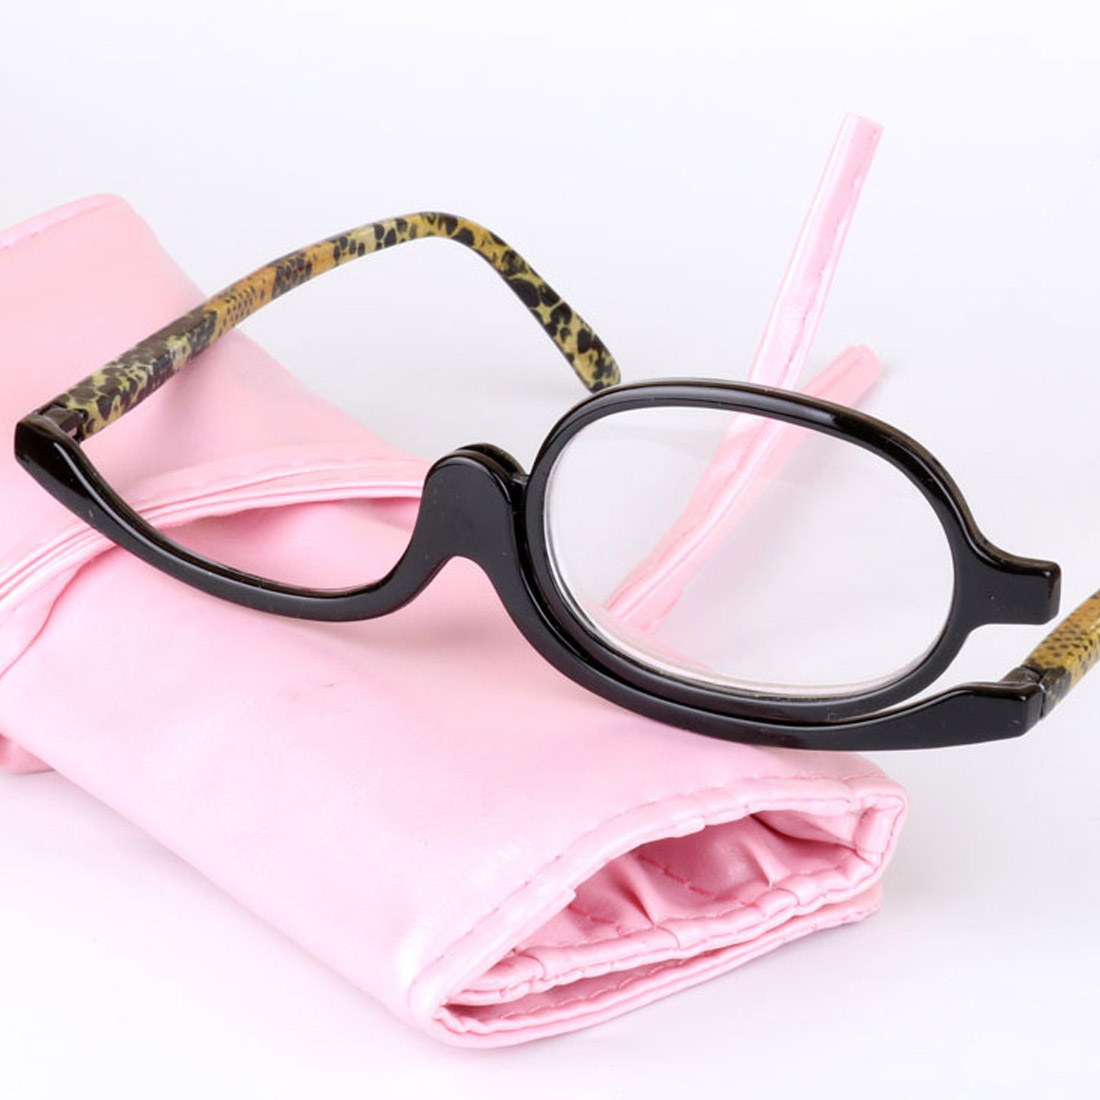 gafas de lectura hombre Women Cosmetic Glasses Making Up Reading Glasses Presbyopic Eyeglass 1 5 4 0 in Men 39 s Reading Glasses from Apparel Accessories